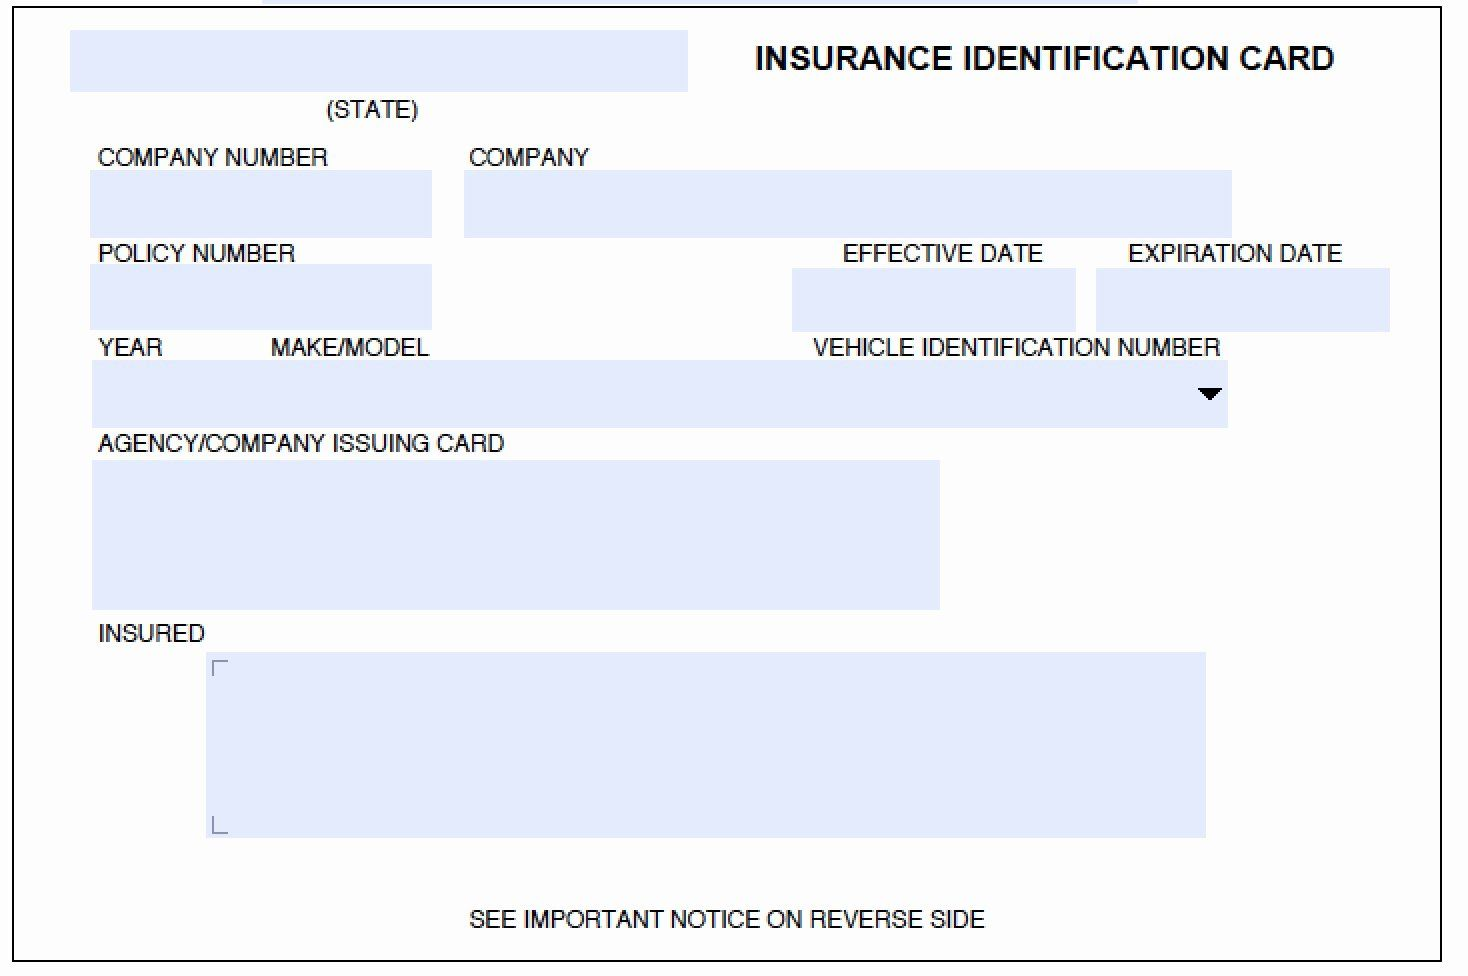 Car Insurance Card Template Fresh Download Auto Insurance Card Template Wikidownload In 2020 Id Card Template Car Insurance Card Template